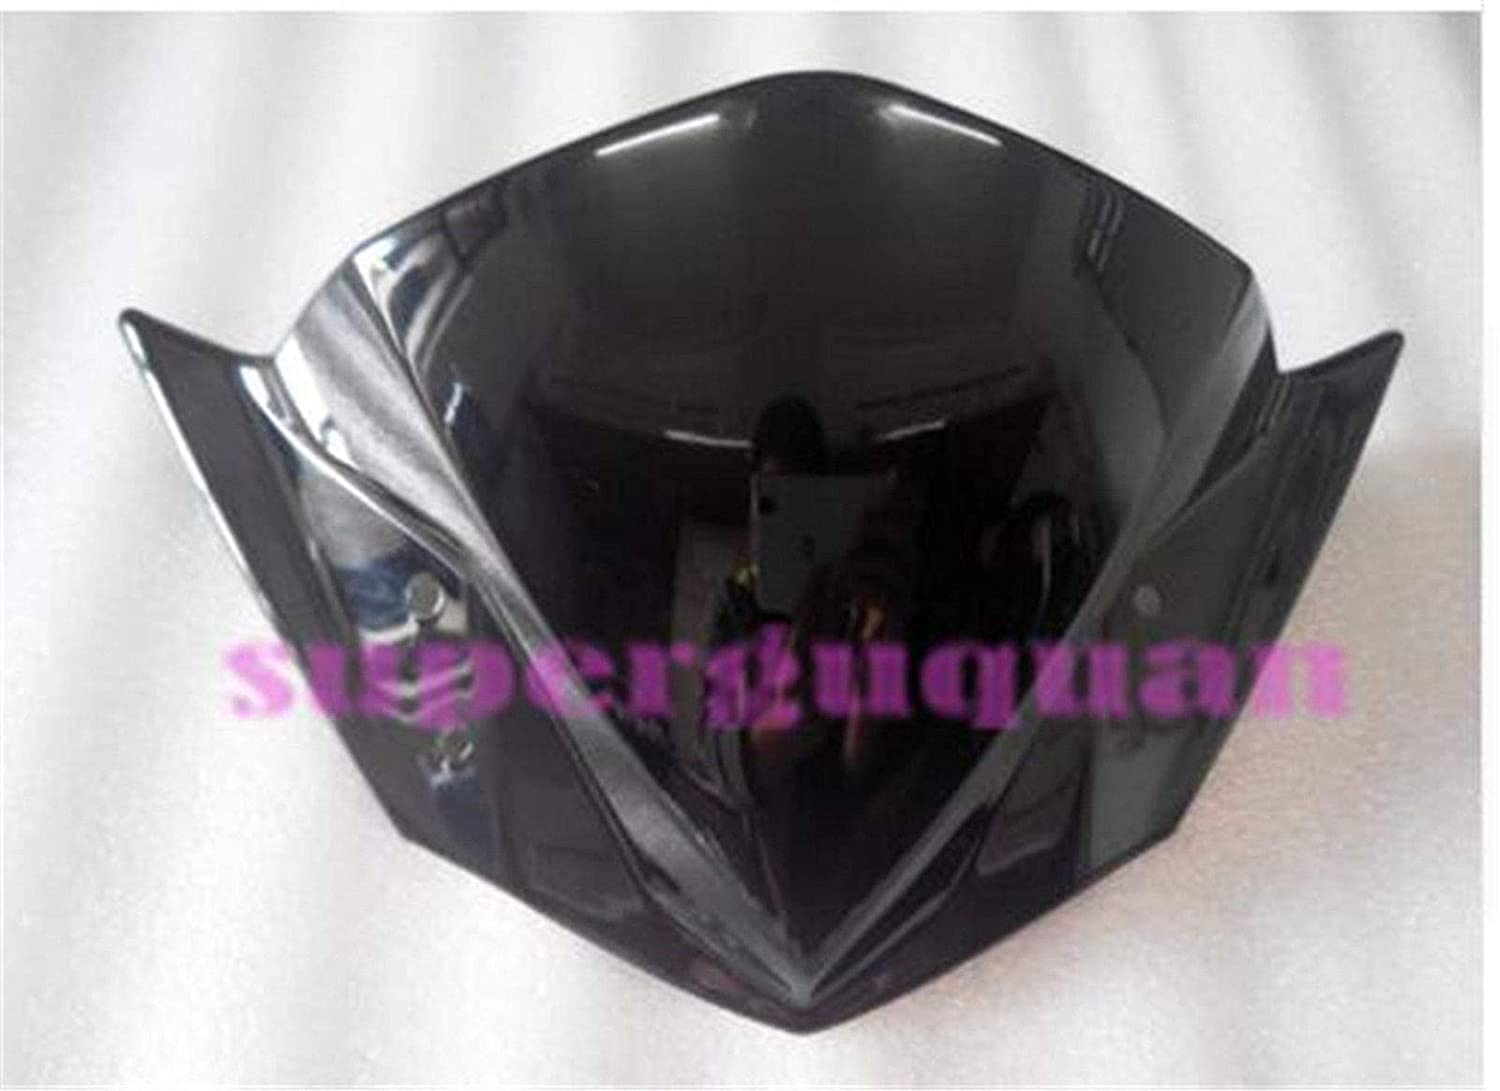 New For Yamaha FZ16 2014 2015 2016 ABS Windshield//Windscreen Black replacement rideforfund